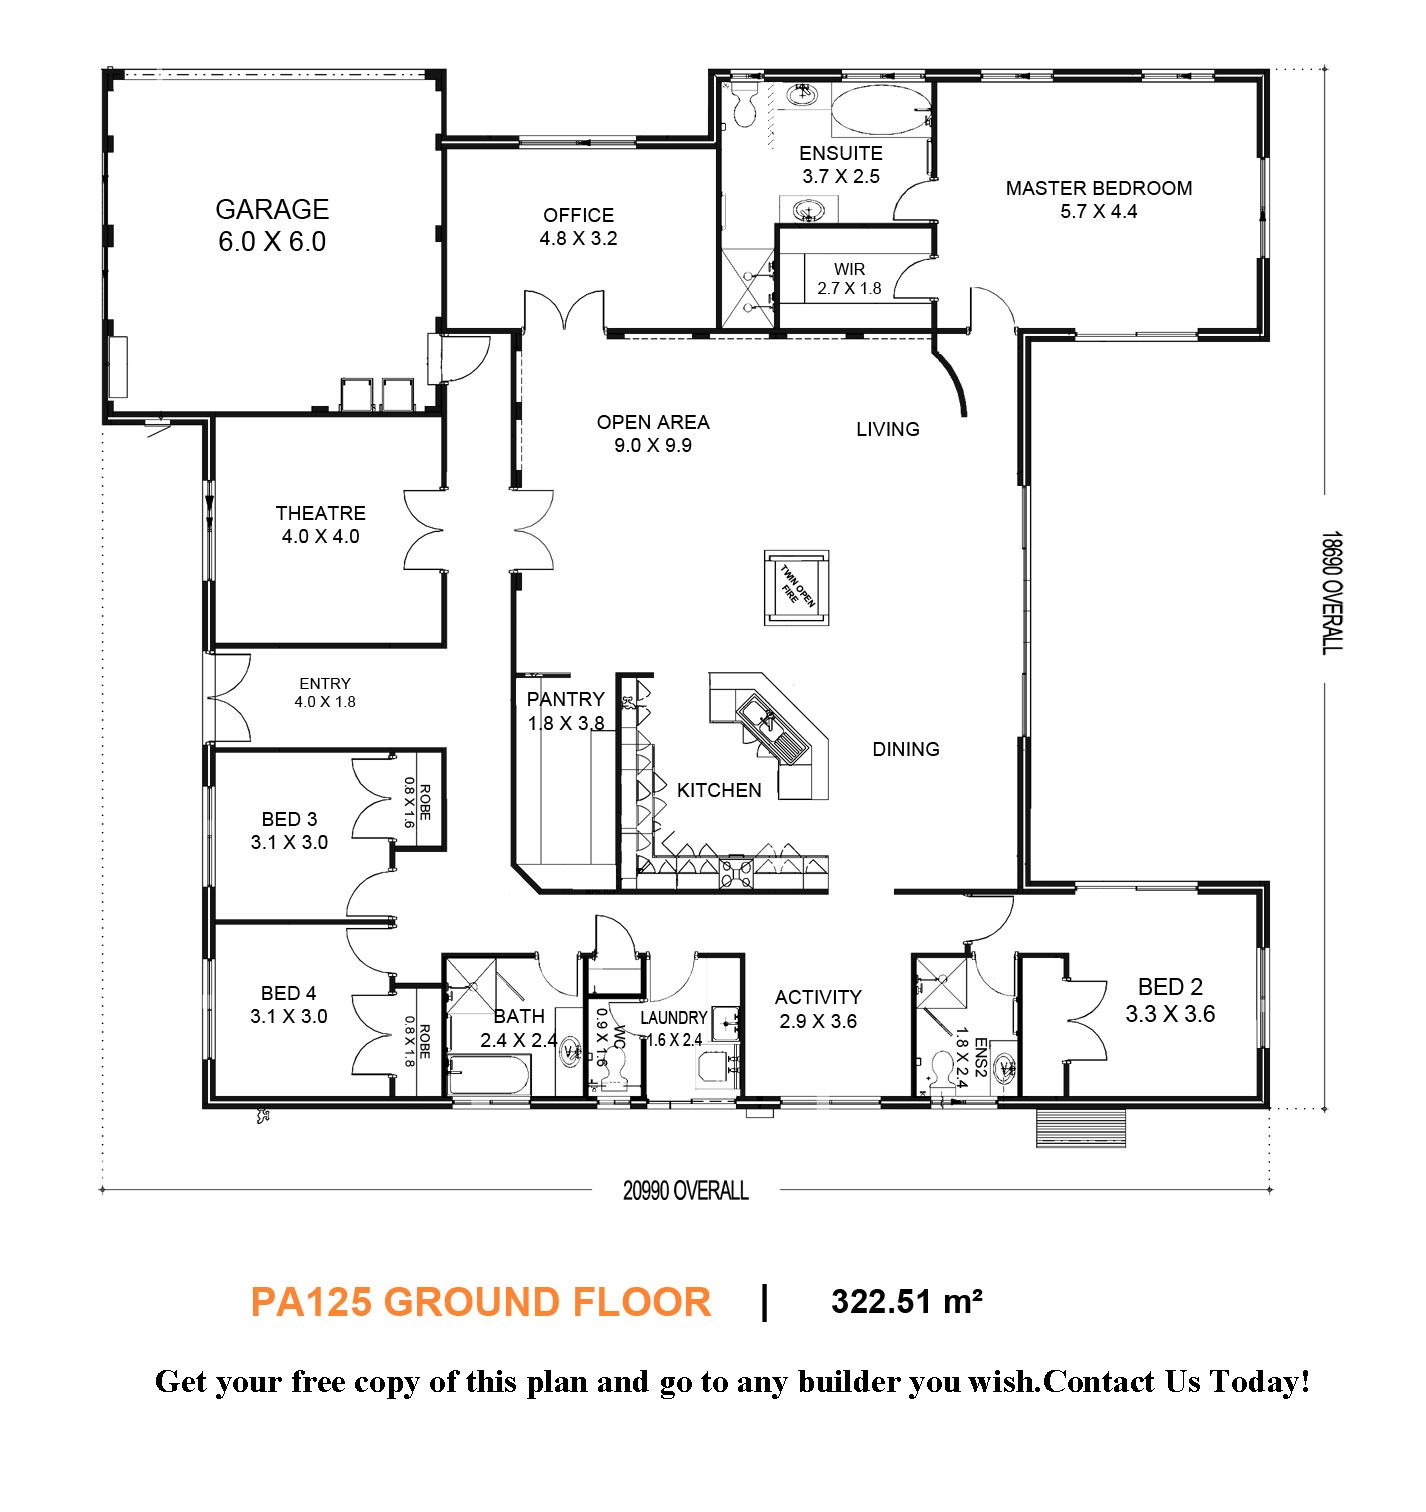 Captivating U Shaped House  I Would Convert The Theater Room For The Gunroom, Combine  Bedroom 2/active Room To Be The Inlaw Suite W/outside Access And Add A  Third Car ...